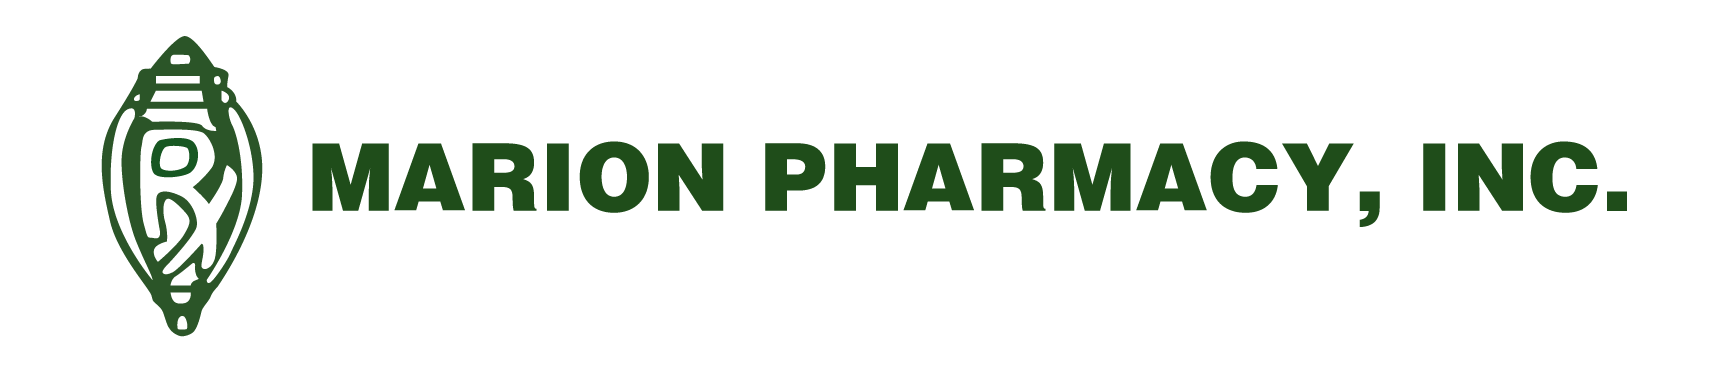 Marion Pharmacy Inc